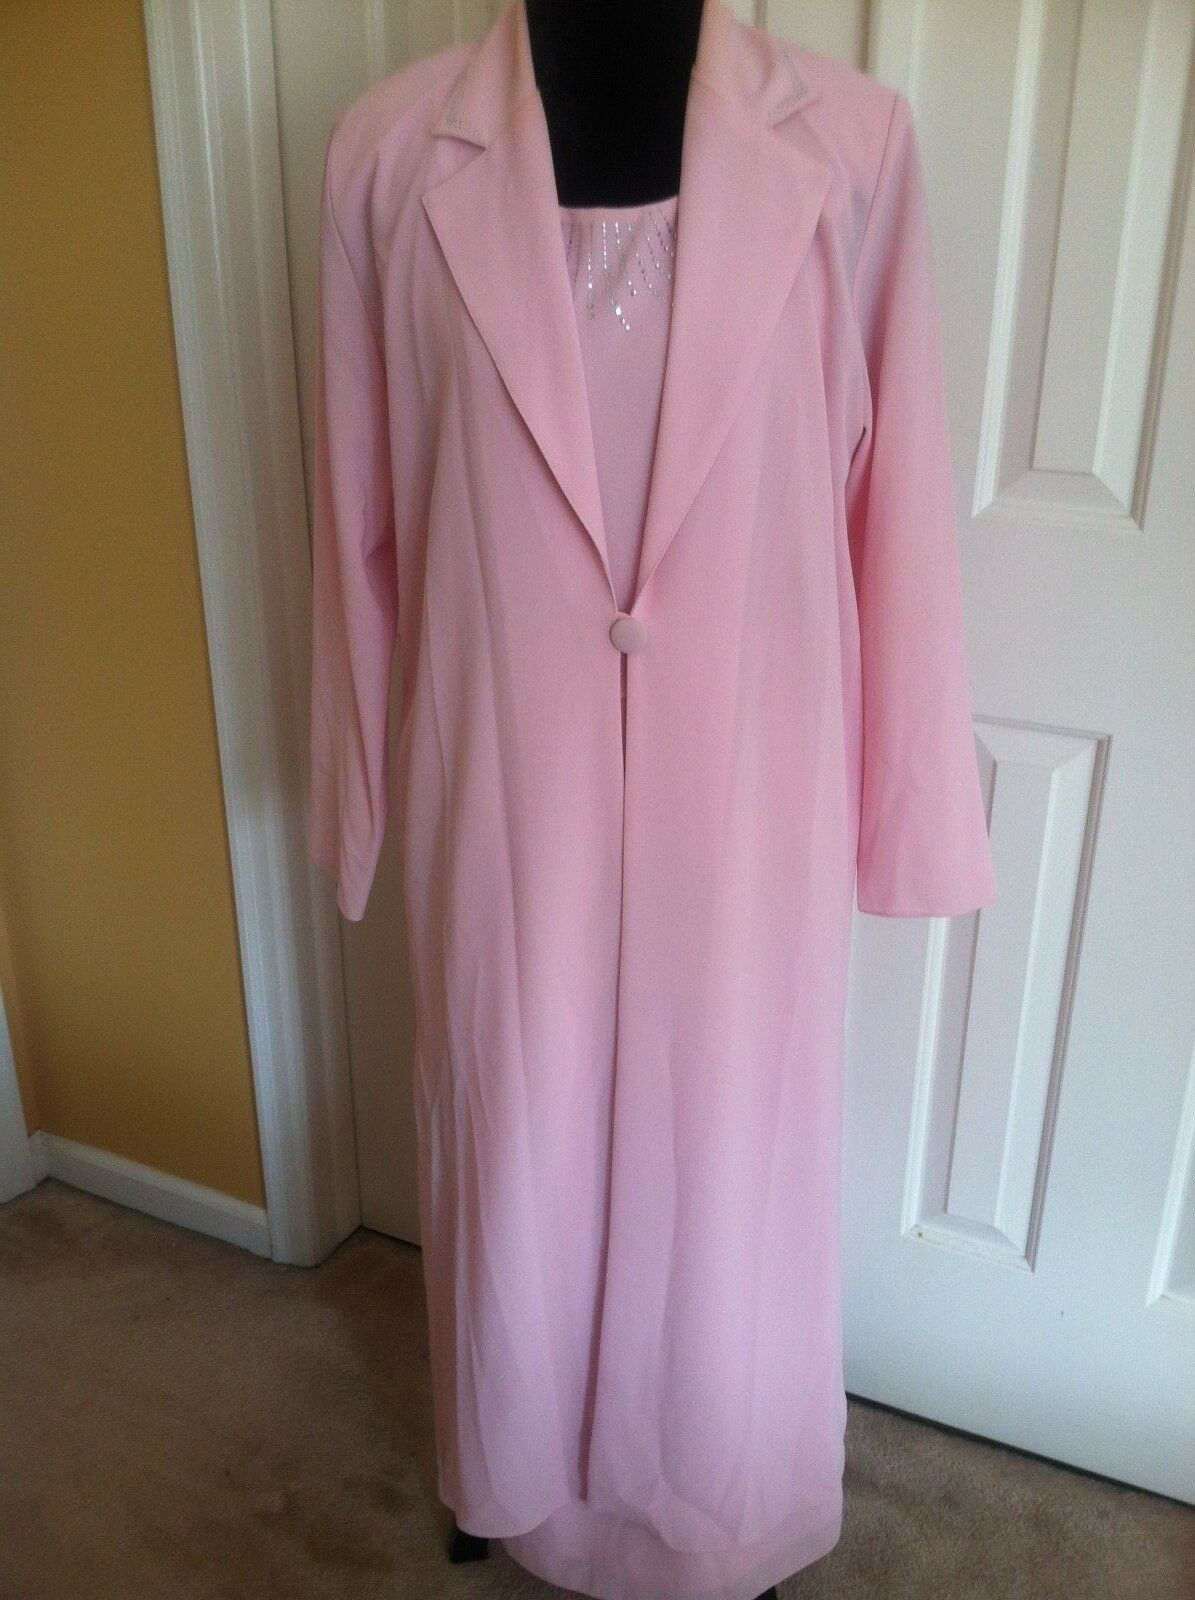 Women's She's Line New York 3 PC Pink Beaded Maxi Skirt Suit Size 14